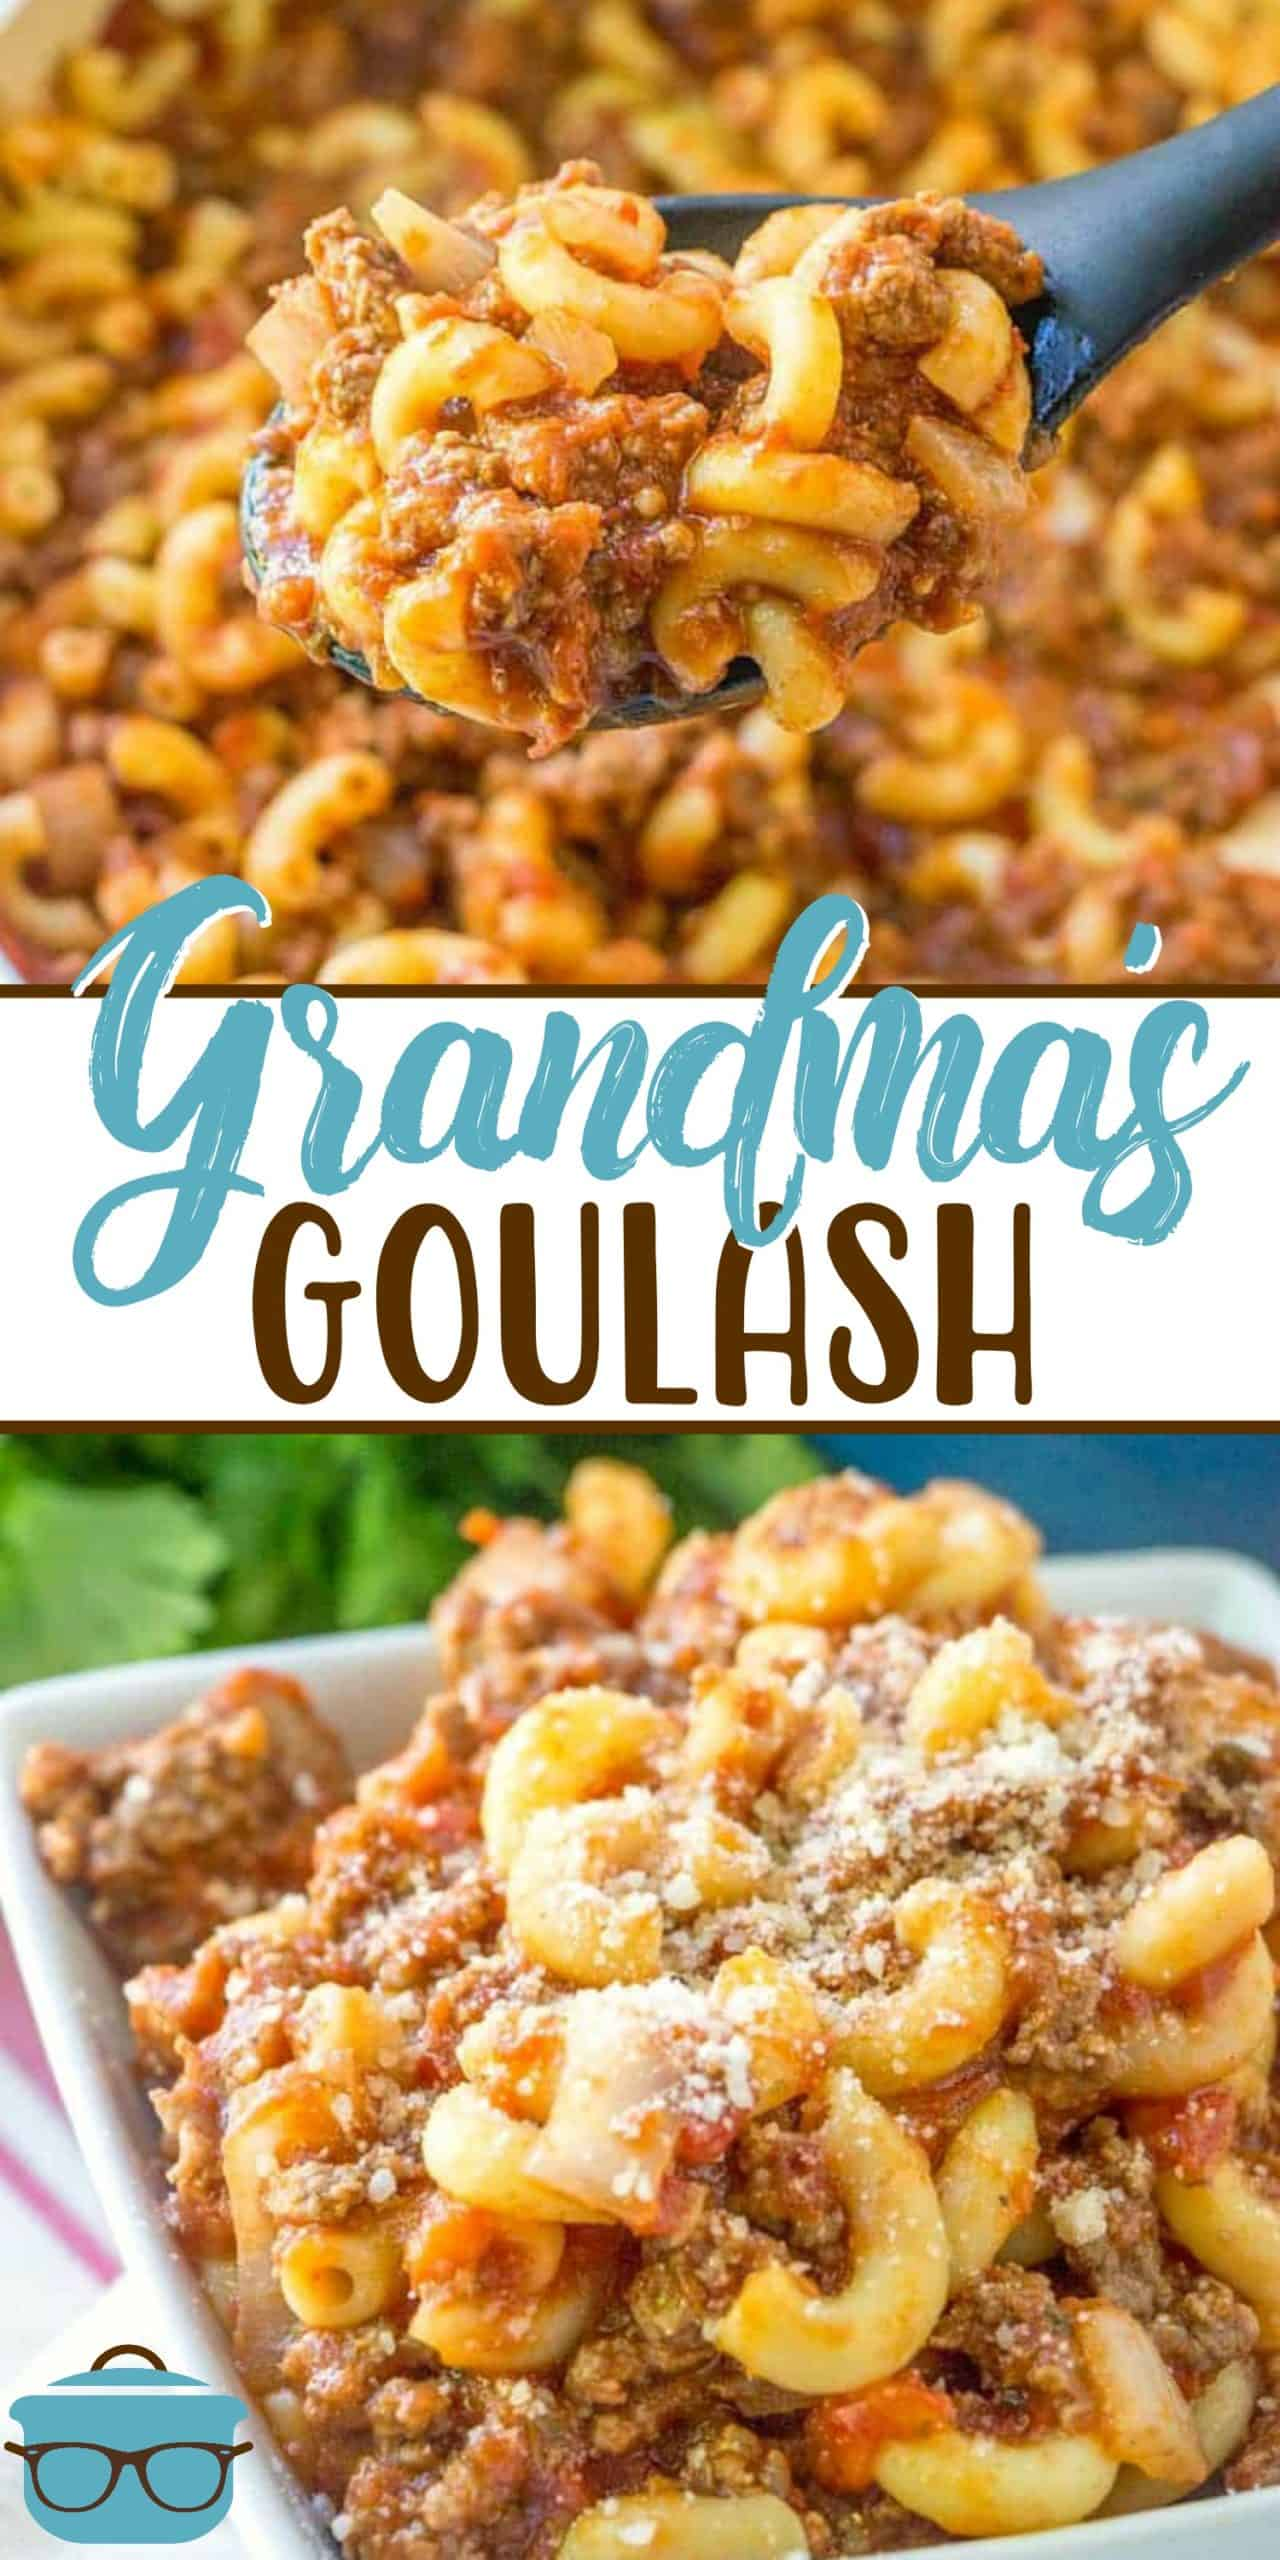 This recipe for Grandma's Goulash is an old family recipe that is totally American and is super easy to make. Ground beef, pasta and sauce! It's sometimes called: American Chop Suey, Johnny Marzetti or Slumgullion.